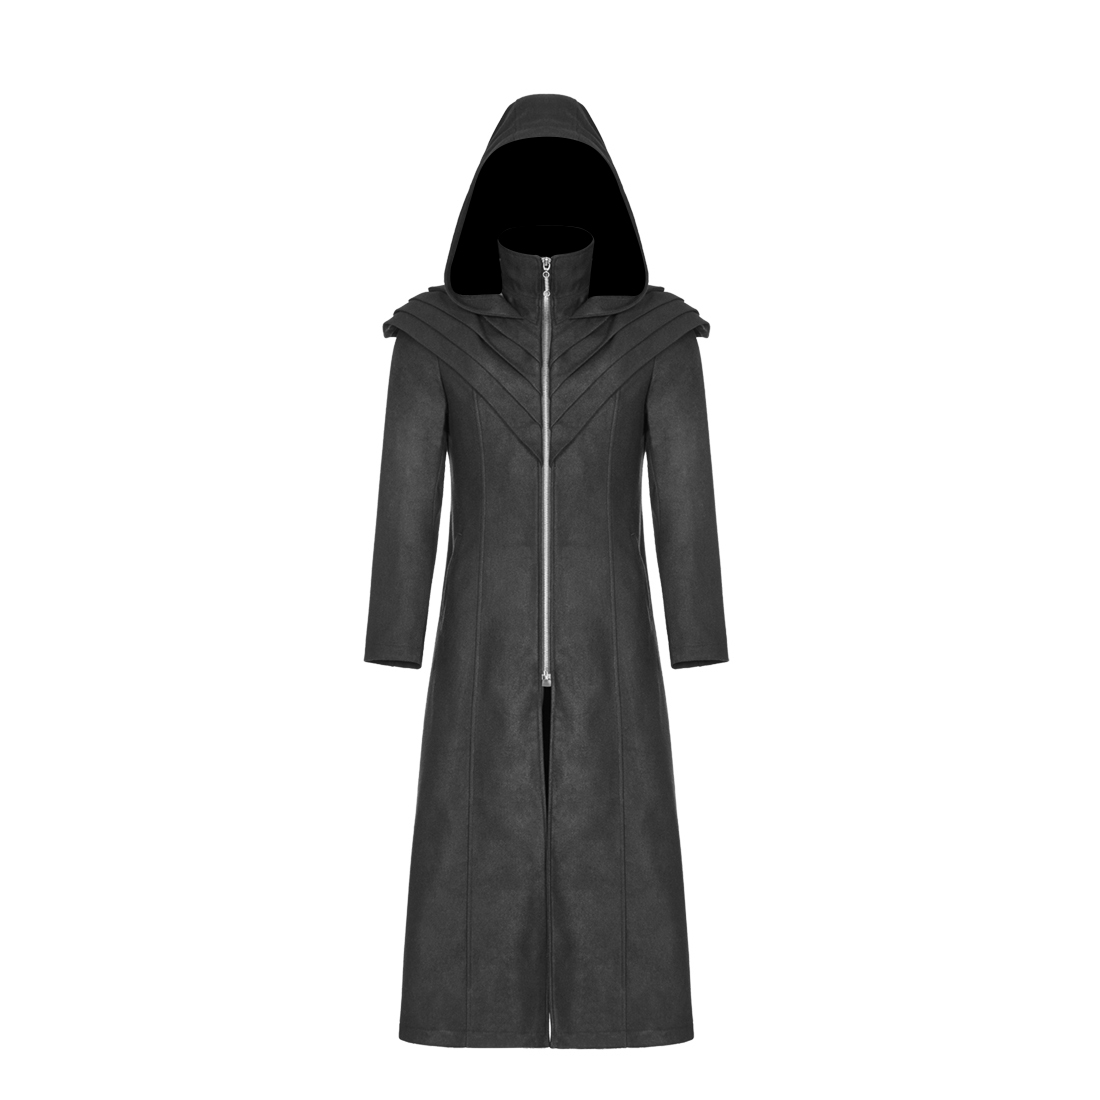 Mens Gothic Long Coat